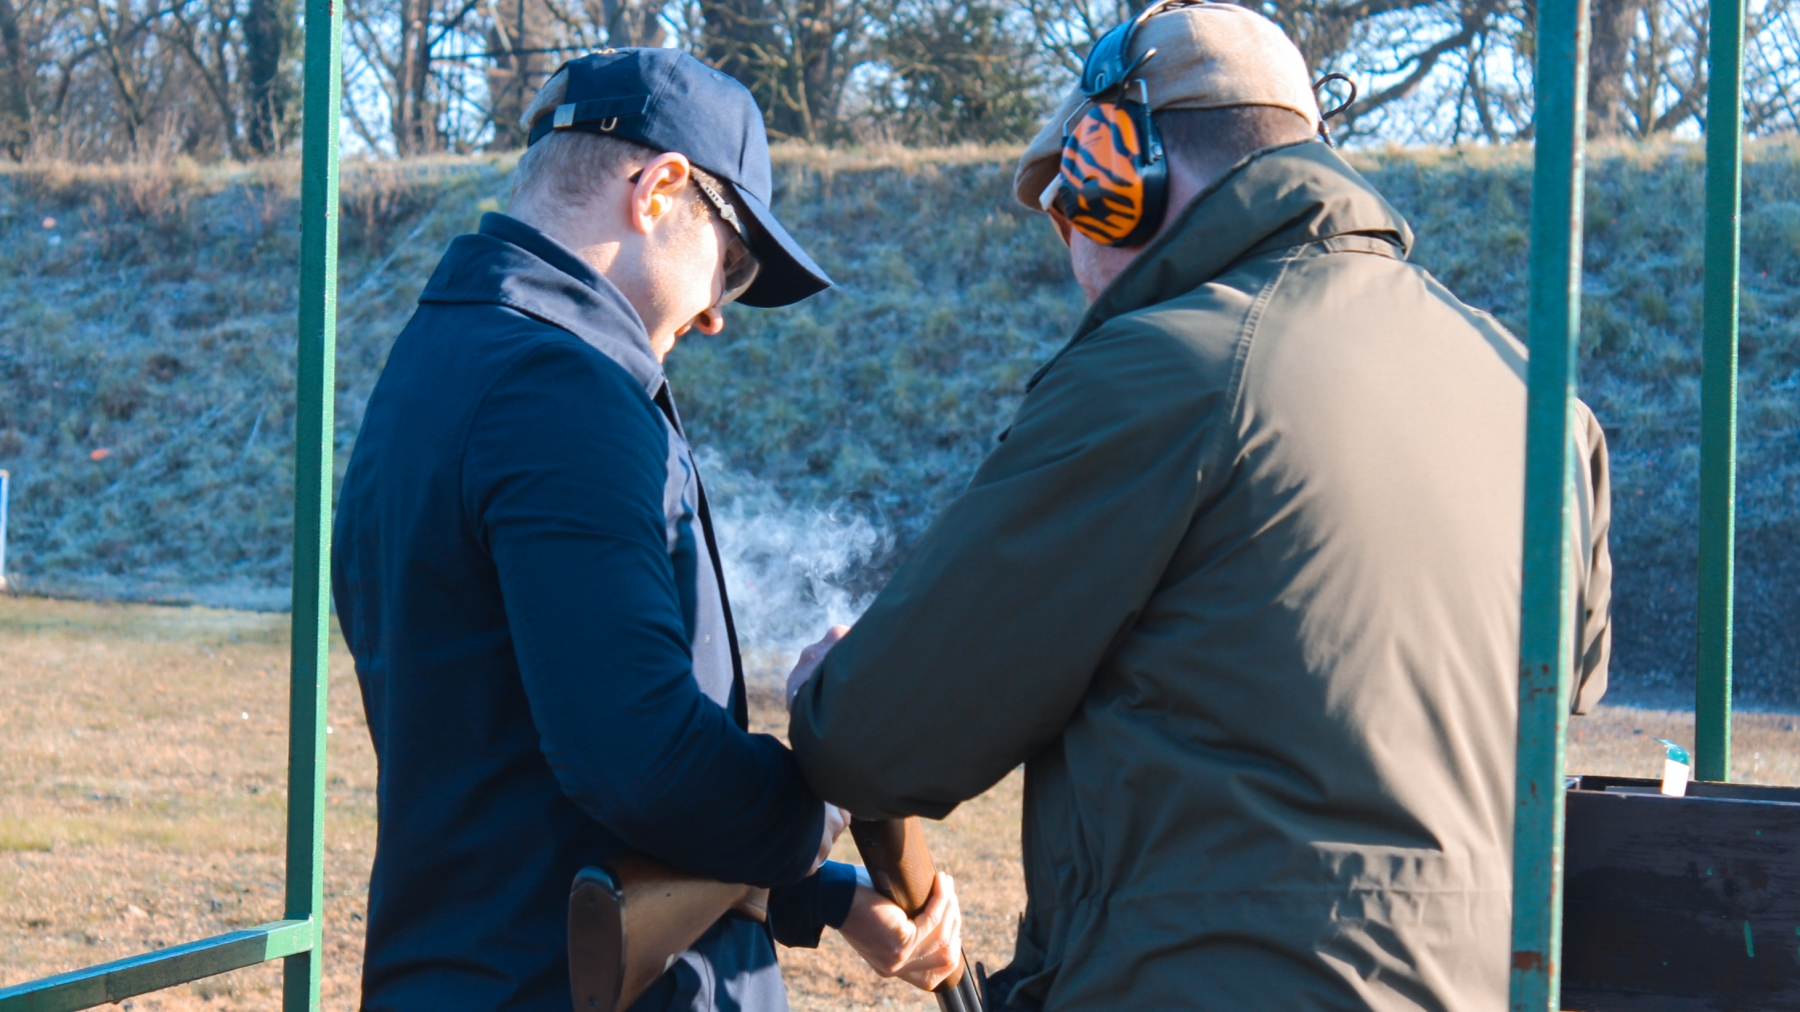 Clay Pigeon Shoot 15.02.2019 (49 of 79)